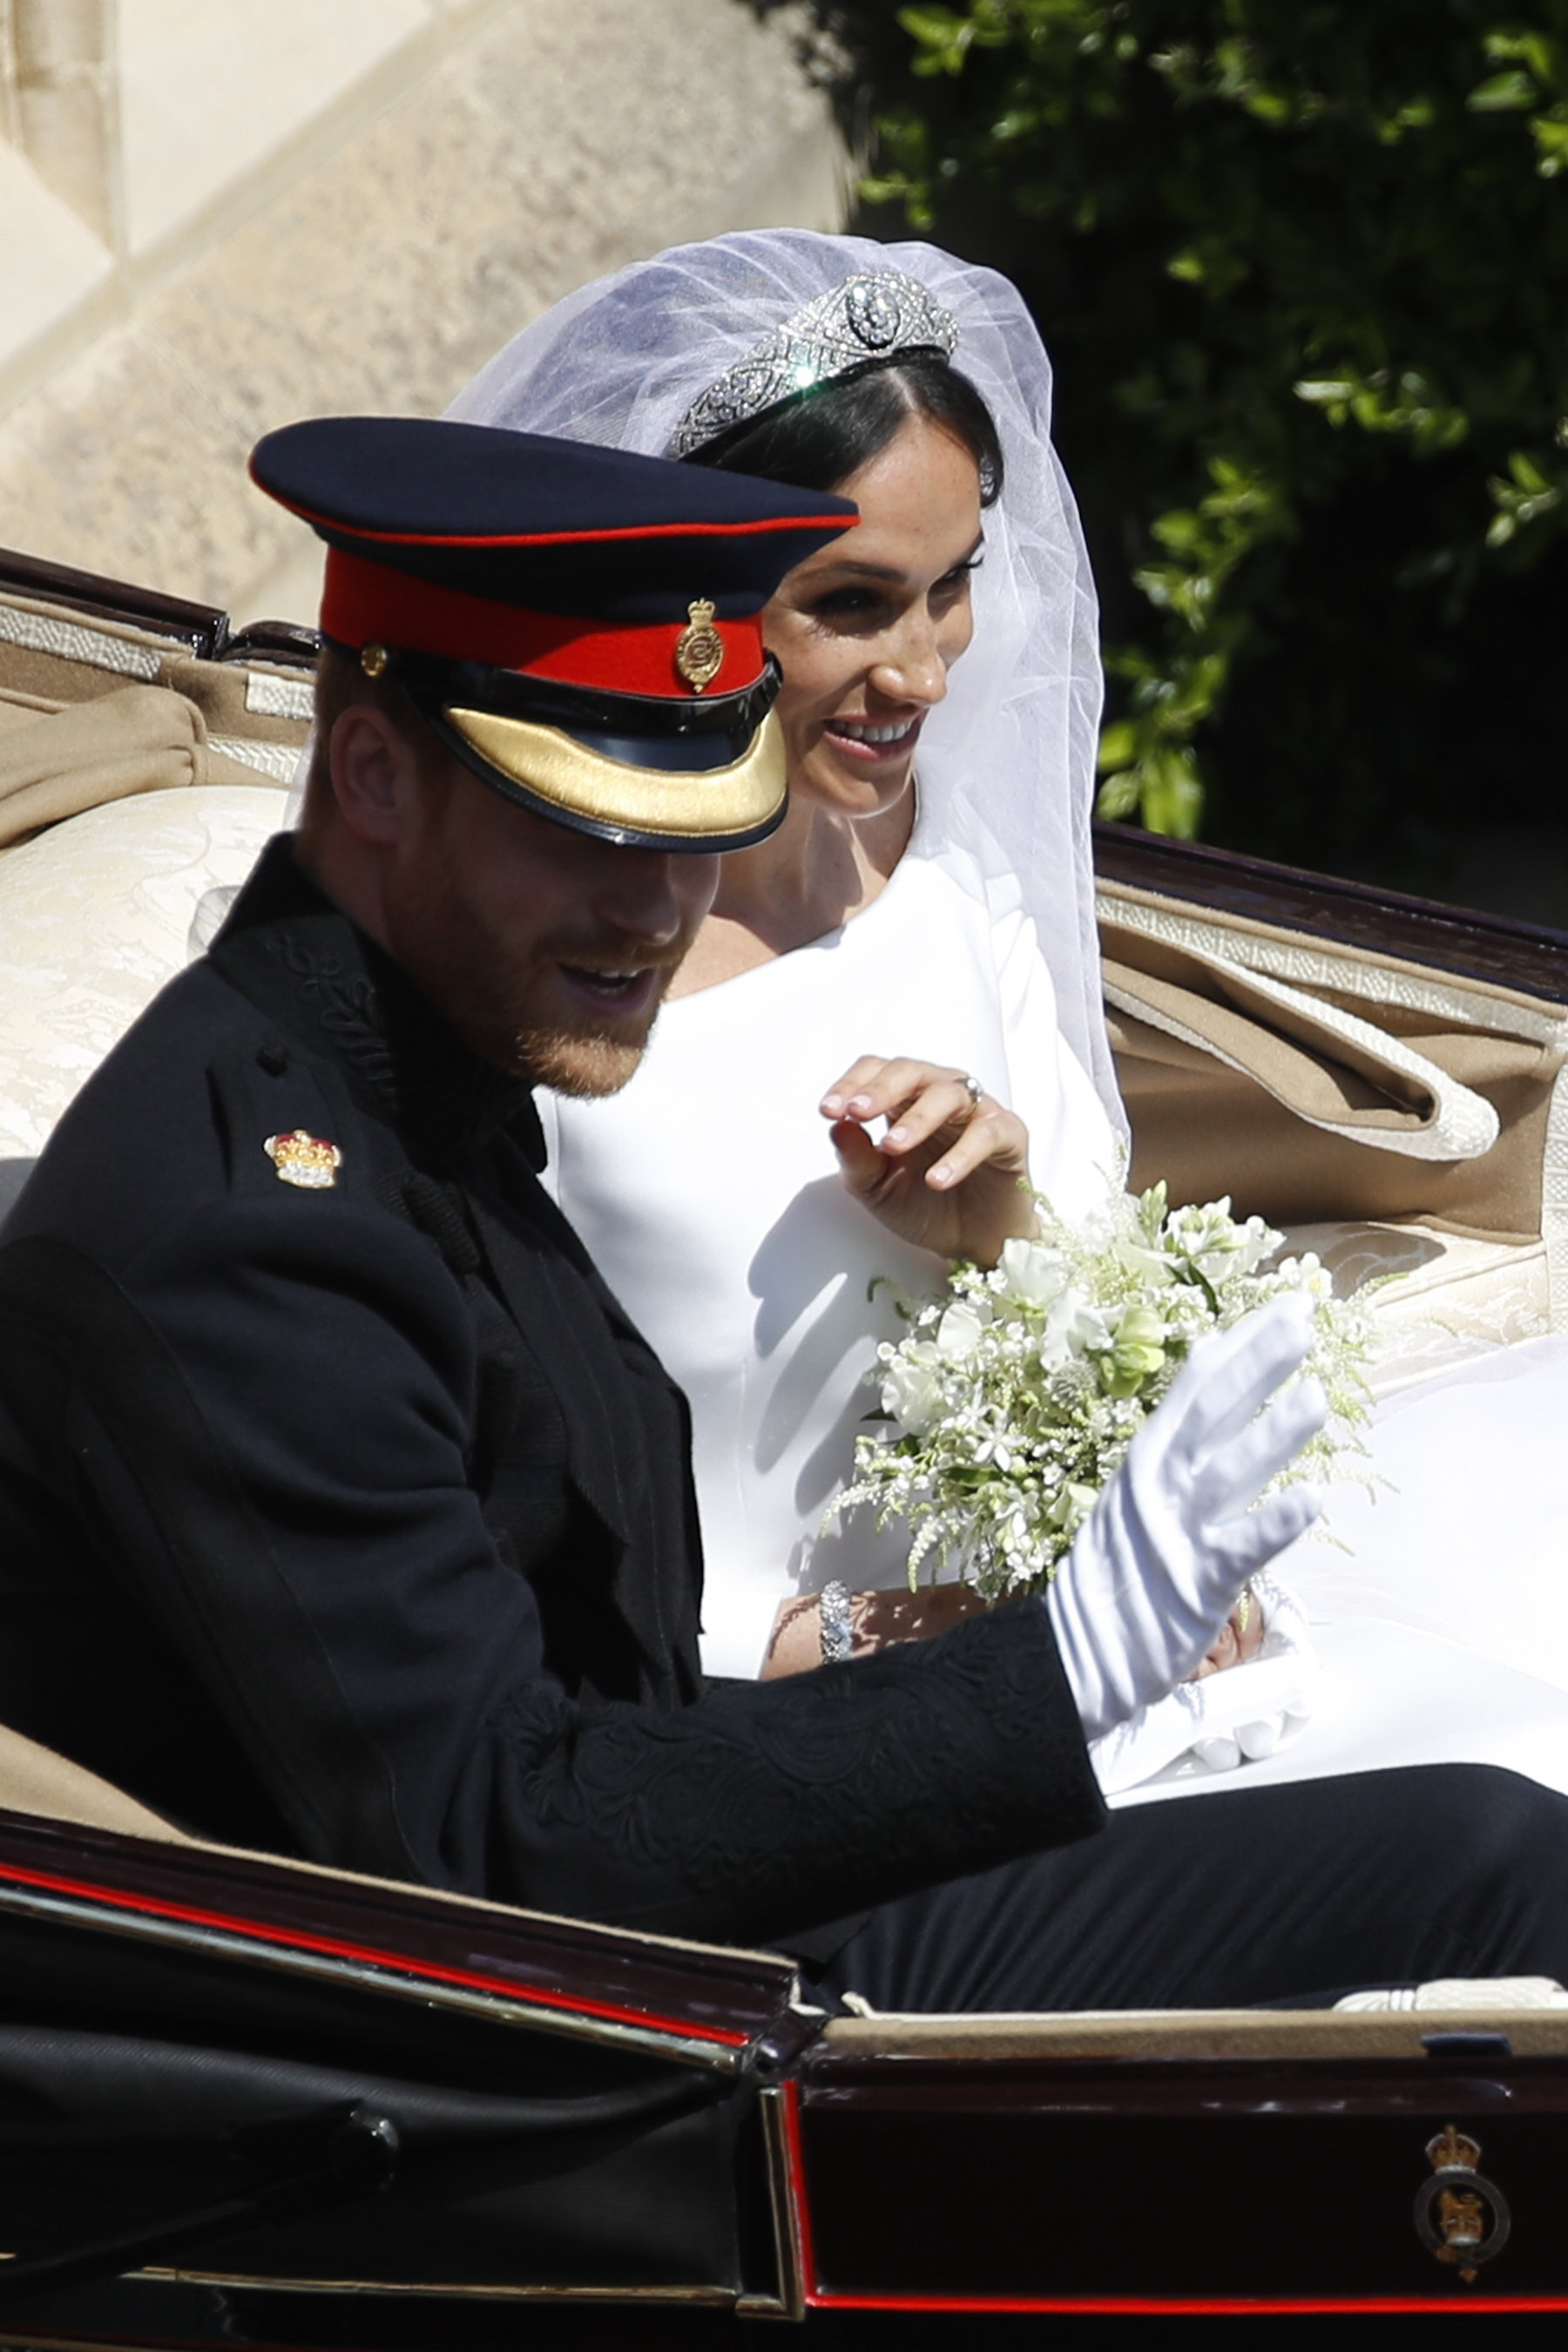 <div class='meta'><div class='origin-logo' data-origin='AP'></div><span class='caption-text' data-credit='Odd Andersen/pool photo via AP'>Britain's Prince Harry and Meghan Markle leave in a carriage after their wedding ceremony at St. George's Chapel in Windsor Castle in Windsor.</span></div>